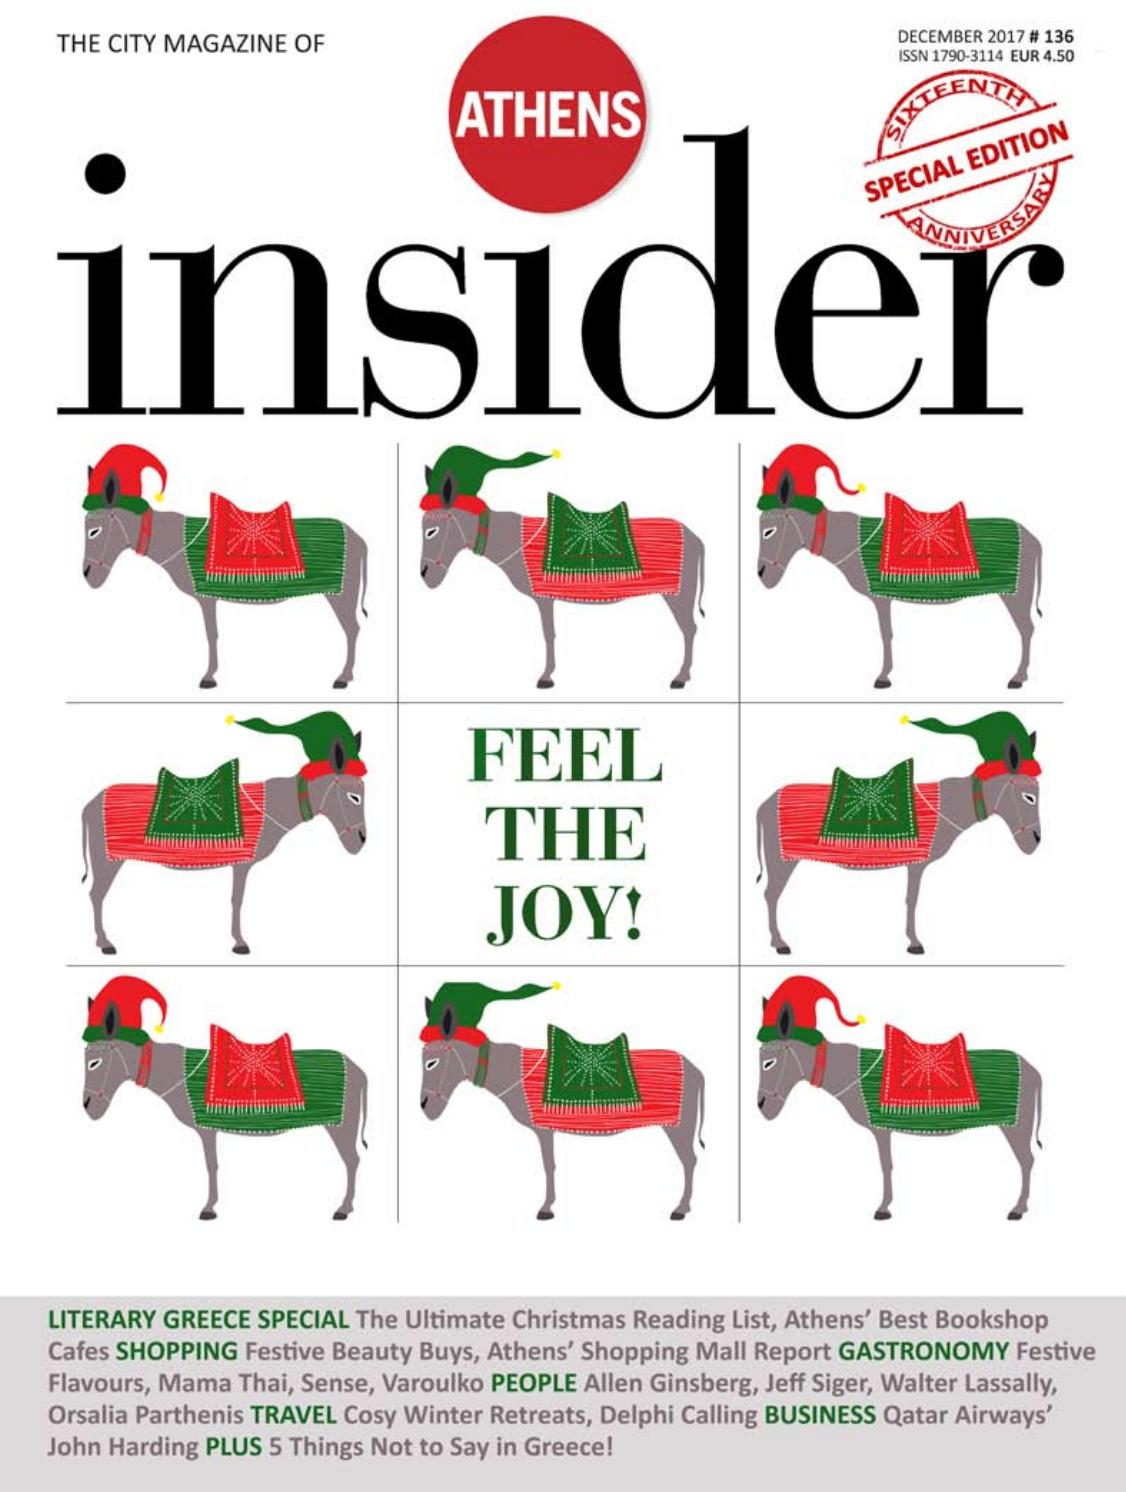 Athens insider 136 december 2017 by Insider Publications - issuu 710391f9c23